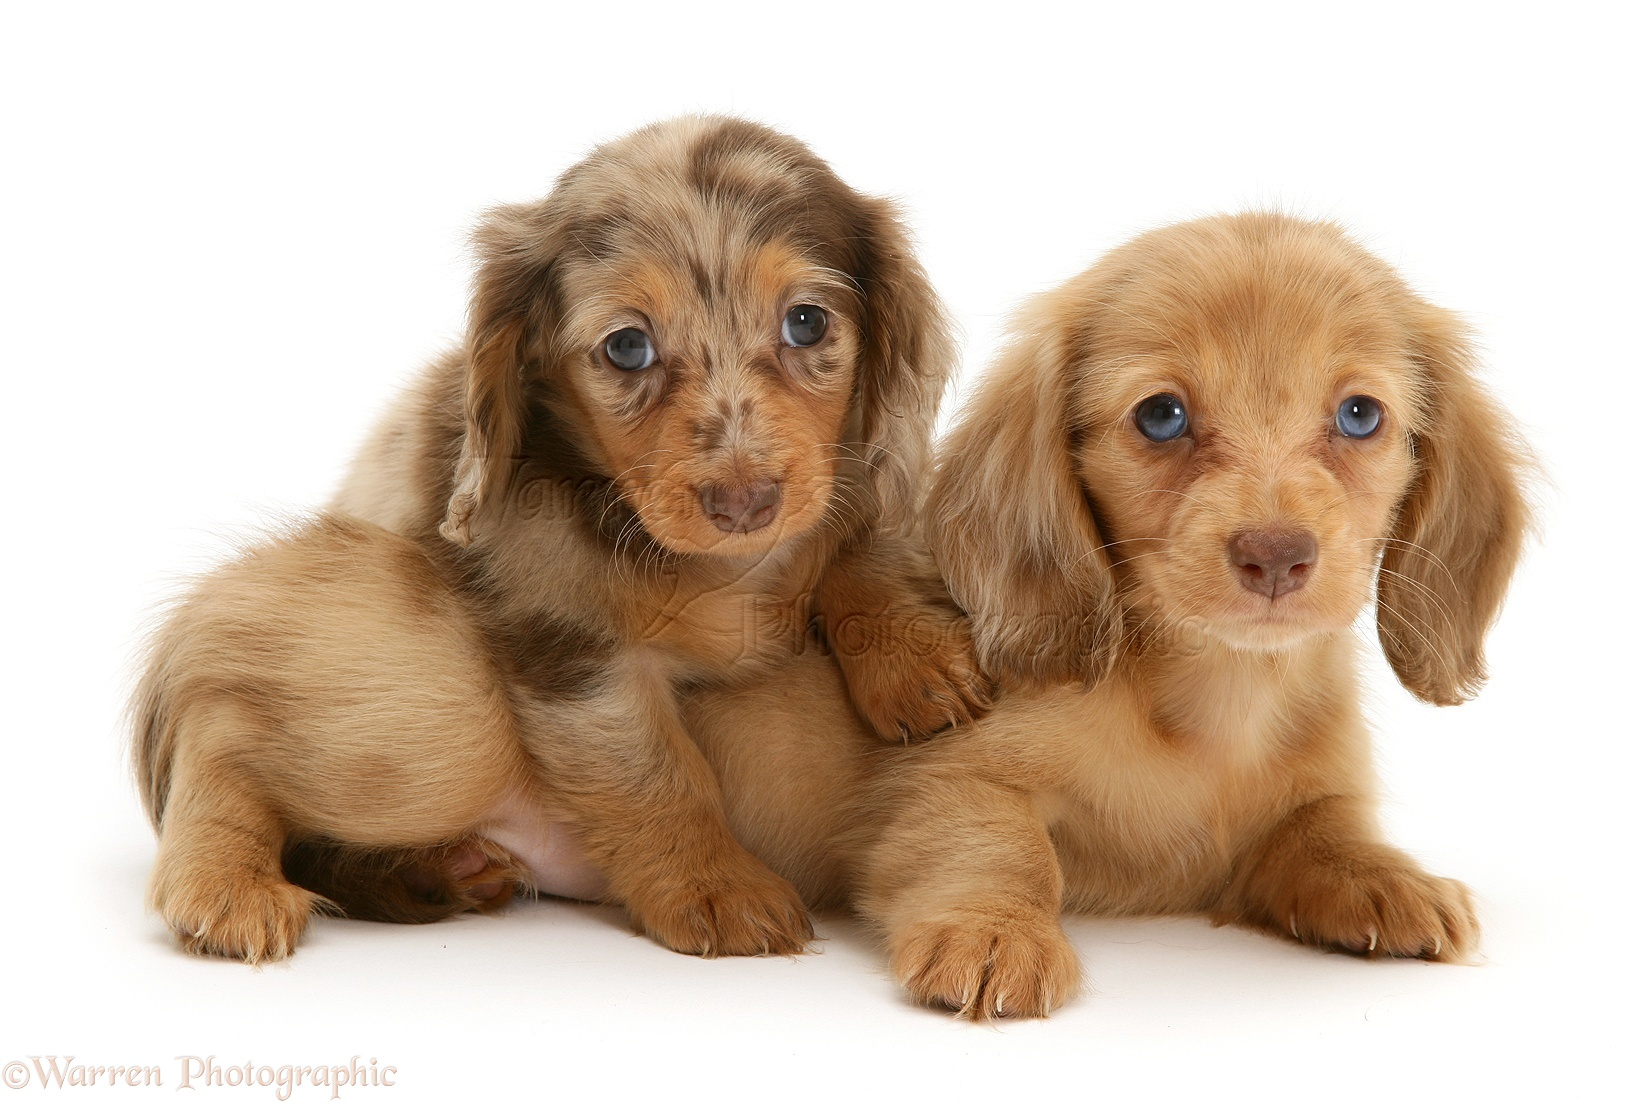 10426 Dachshund pups white background - NO.1# LONG HAIRED DACHSHUNDS INFORMATION GUIDE